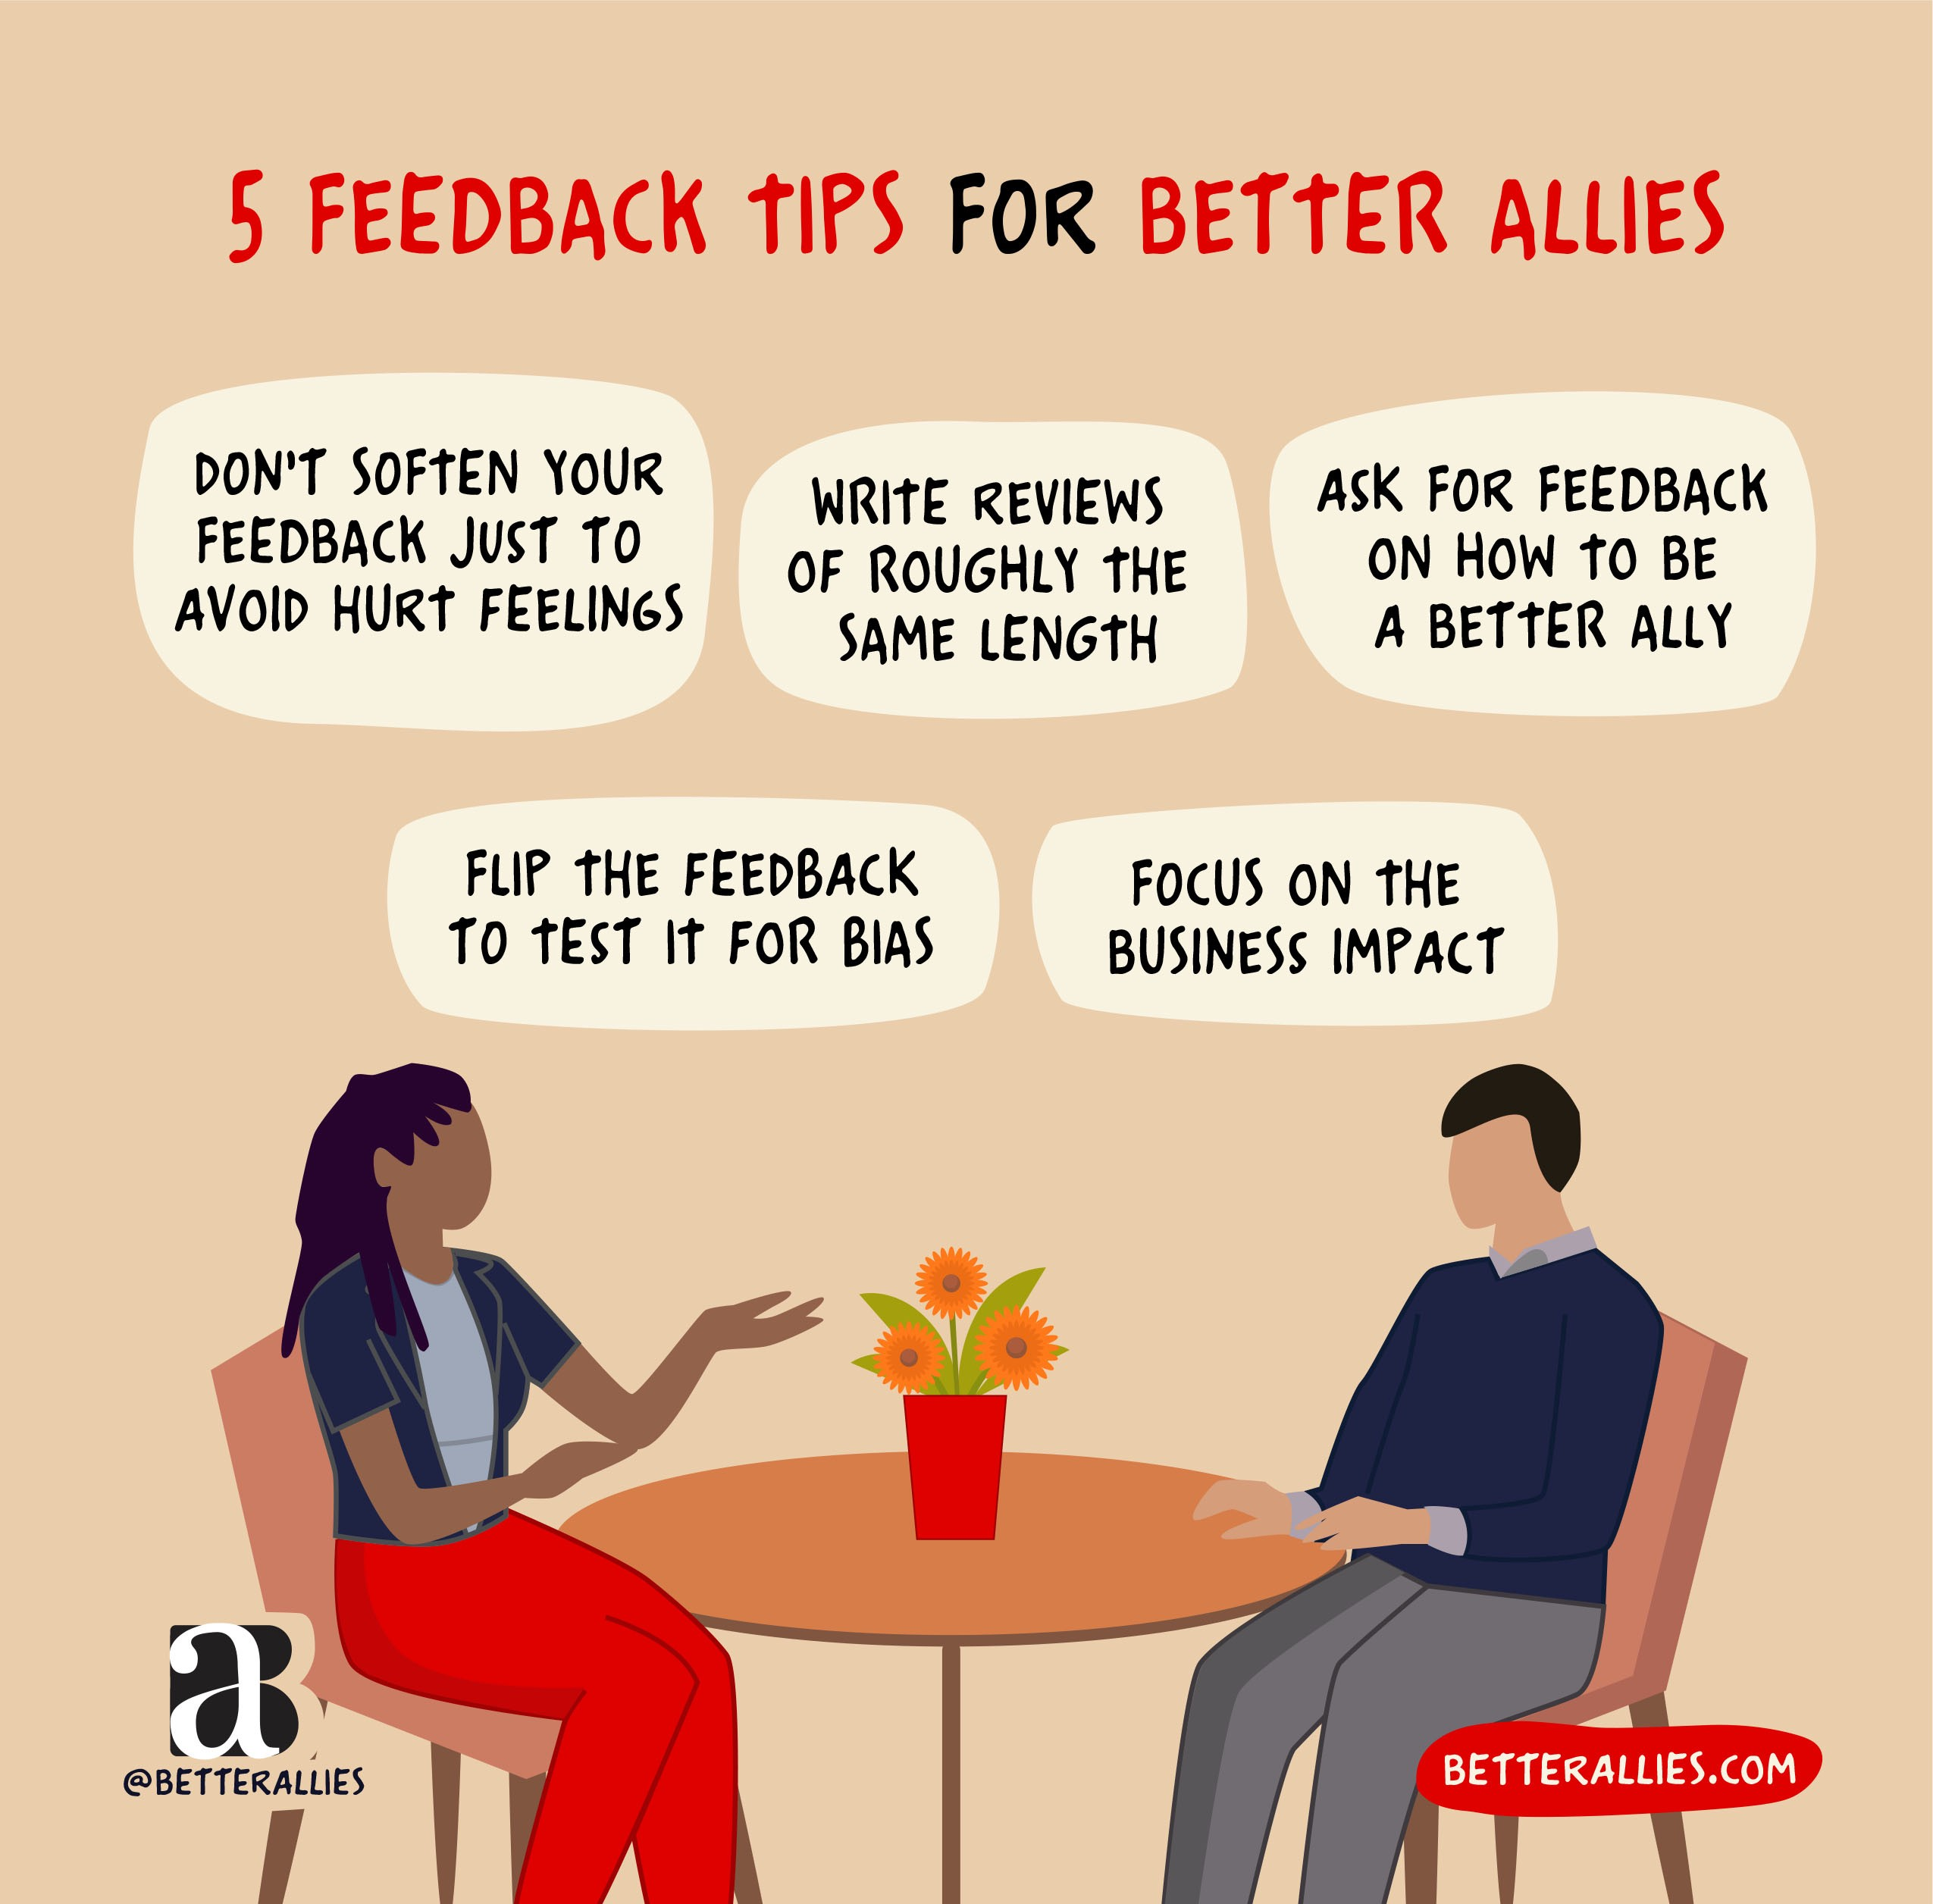 Drawing of a Black person and a white person at a table. Text: 5 Feedback Tips for Better Allies, with all tips in this post.